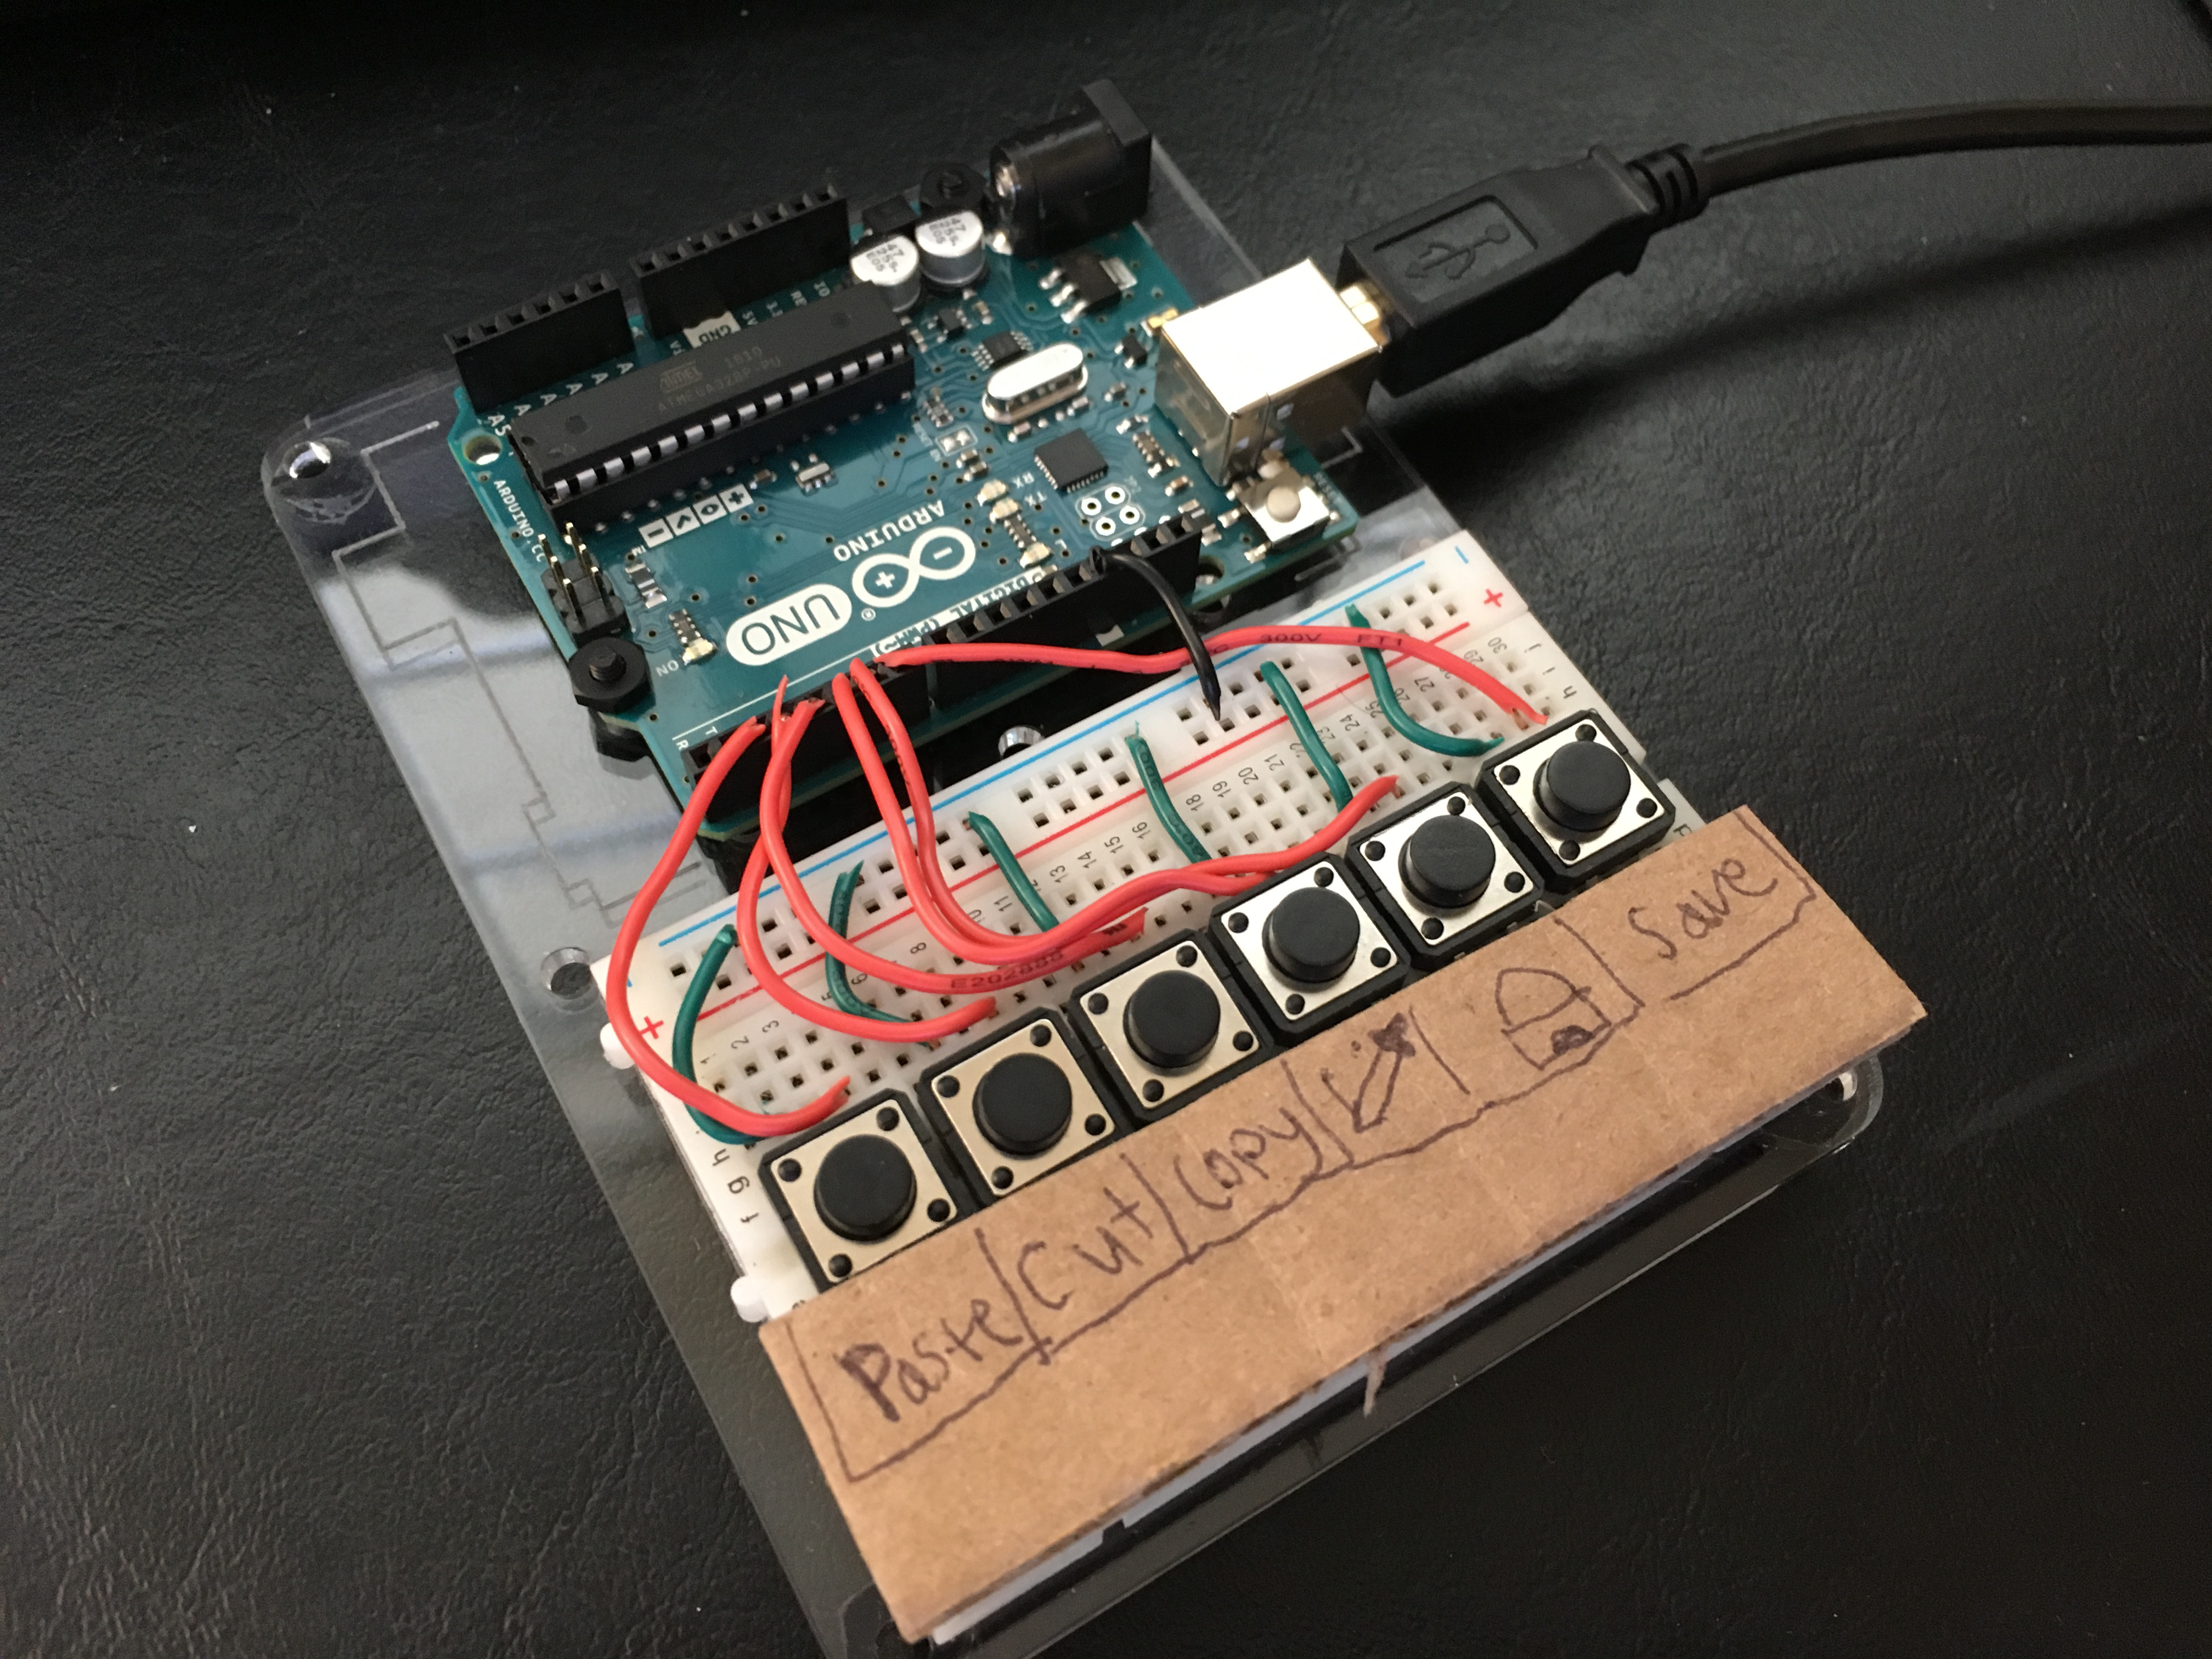 Prototype with cardboard interface